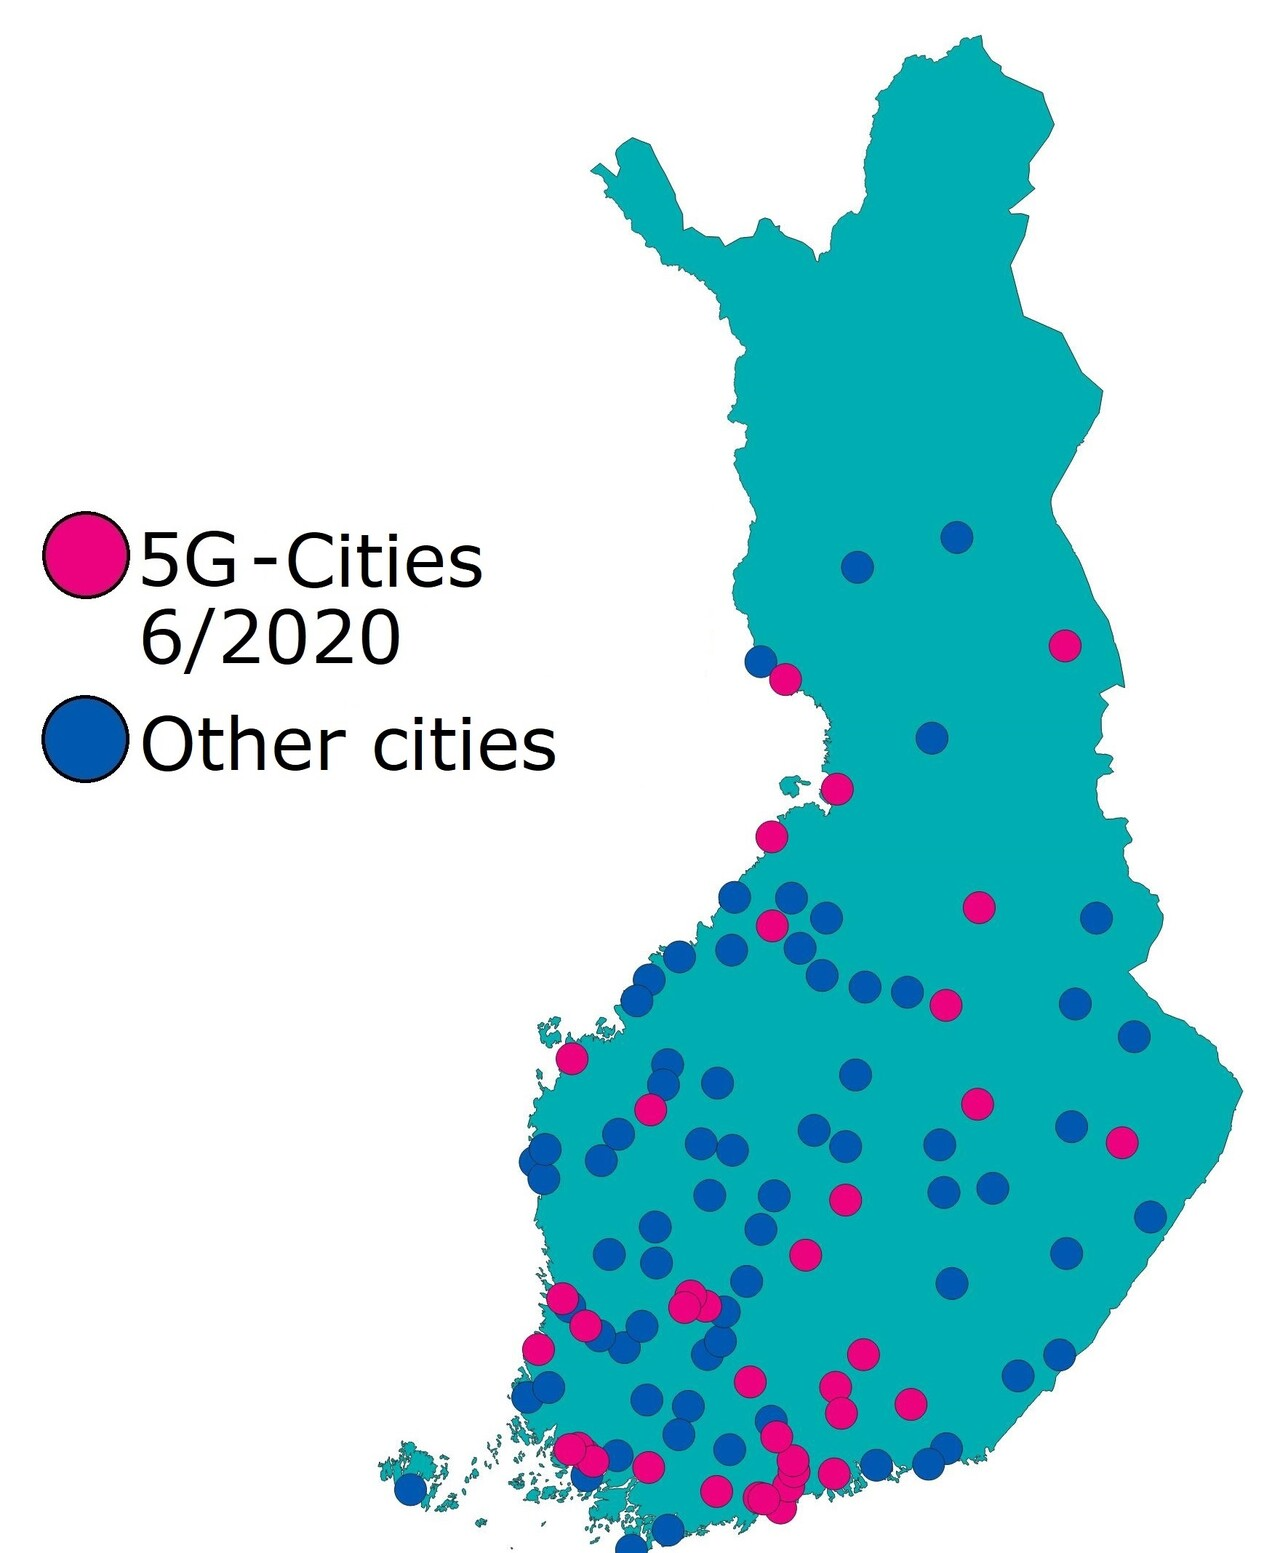 5G cities by the end of June 2020: There were 38 cities in Finland that had 5G networks by the end of June 2020 and 69 cities without 5G networks.